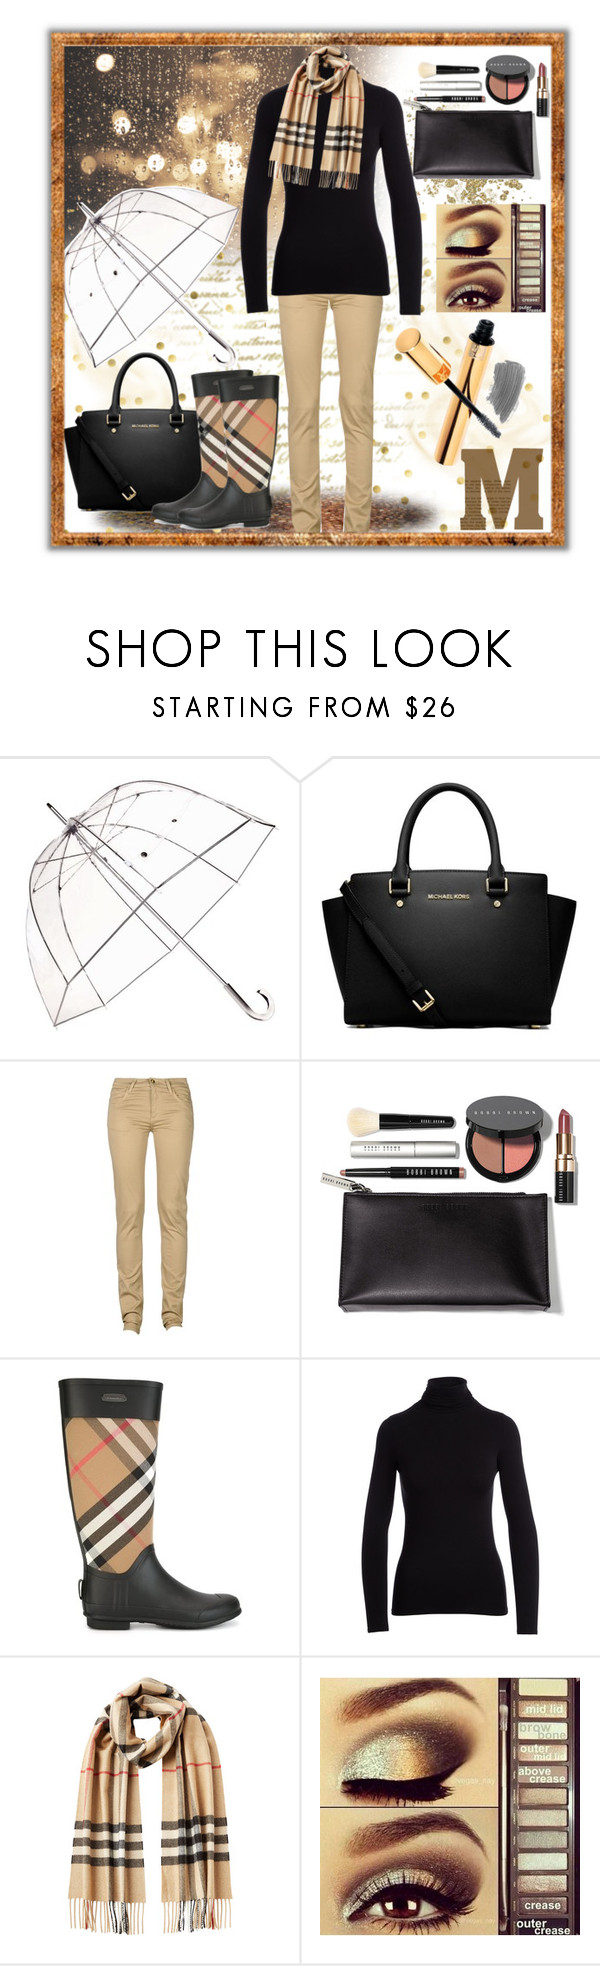 """Let it rain"" by summer-marin ❤ liked on Polyvore featuring Totes, MICHAEL Michael Kors, Monkee Genes, Bobbi Brown Cosmetics, Burberry, NM Luxury Essentials, Urban Decay and Yves Saint Laurent"